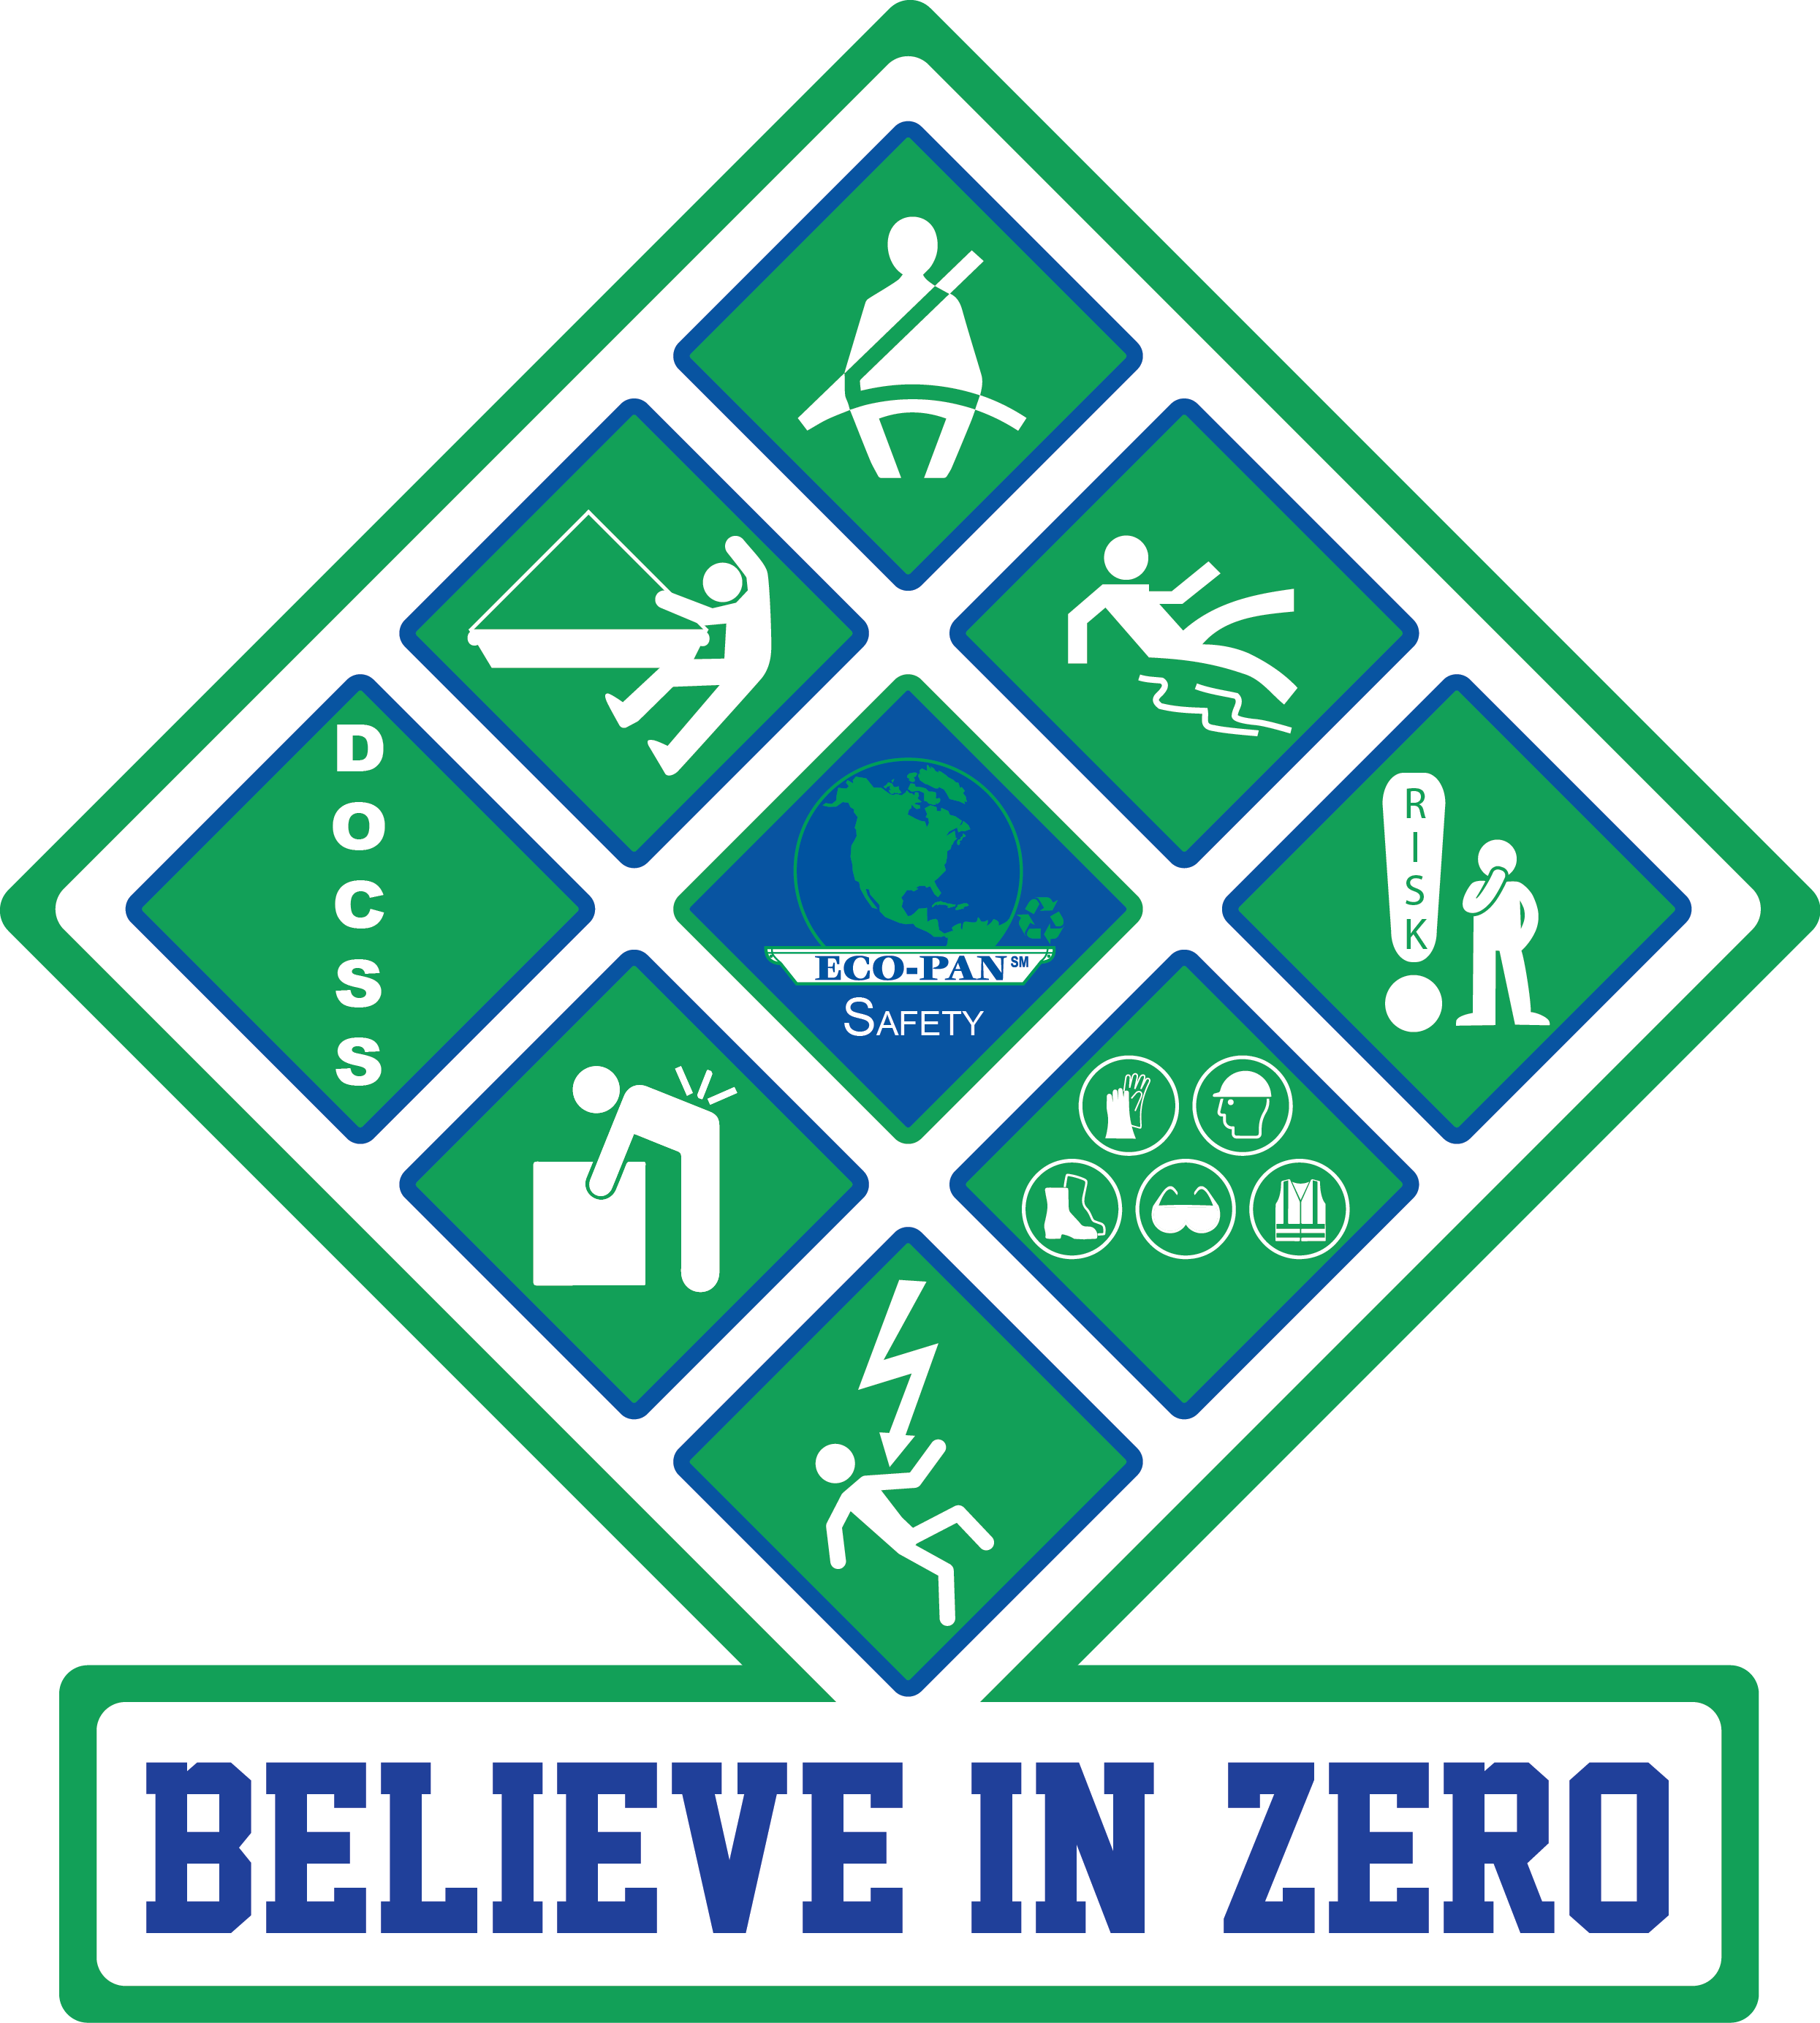 Eco-Pan Believe In Zero Safety Diamond